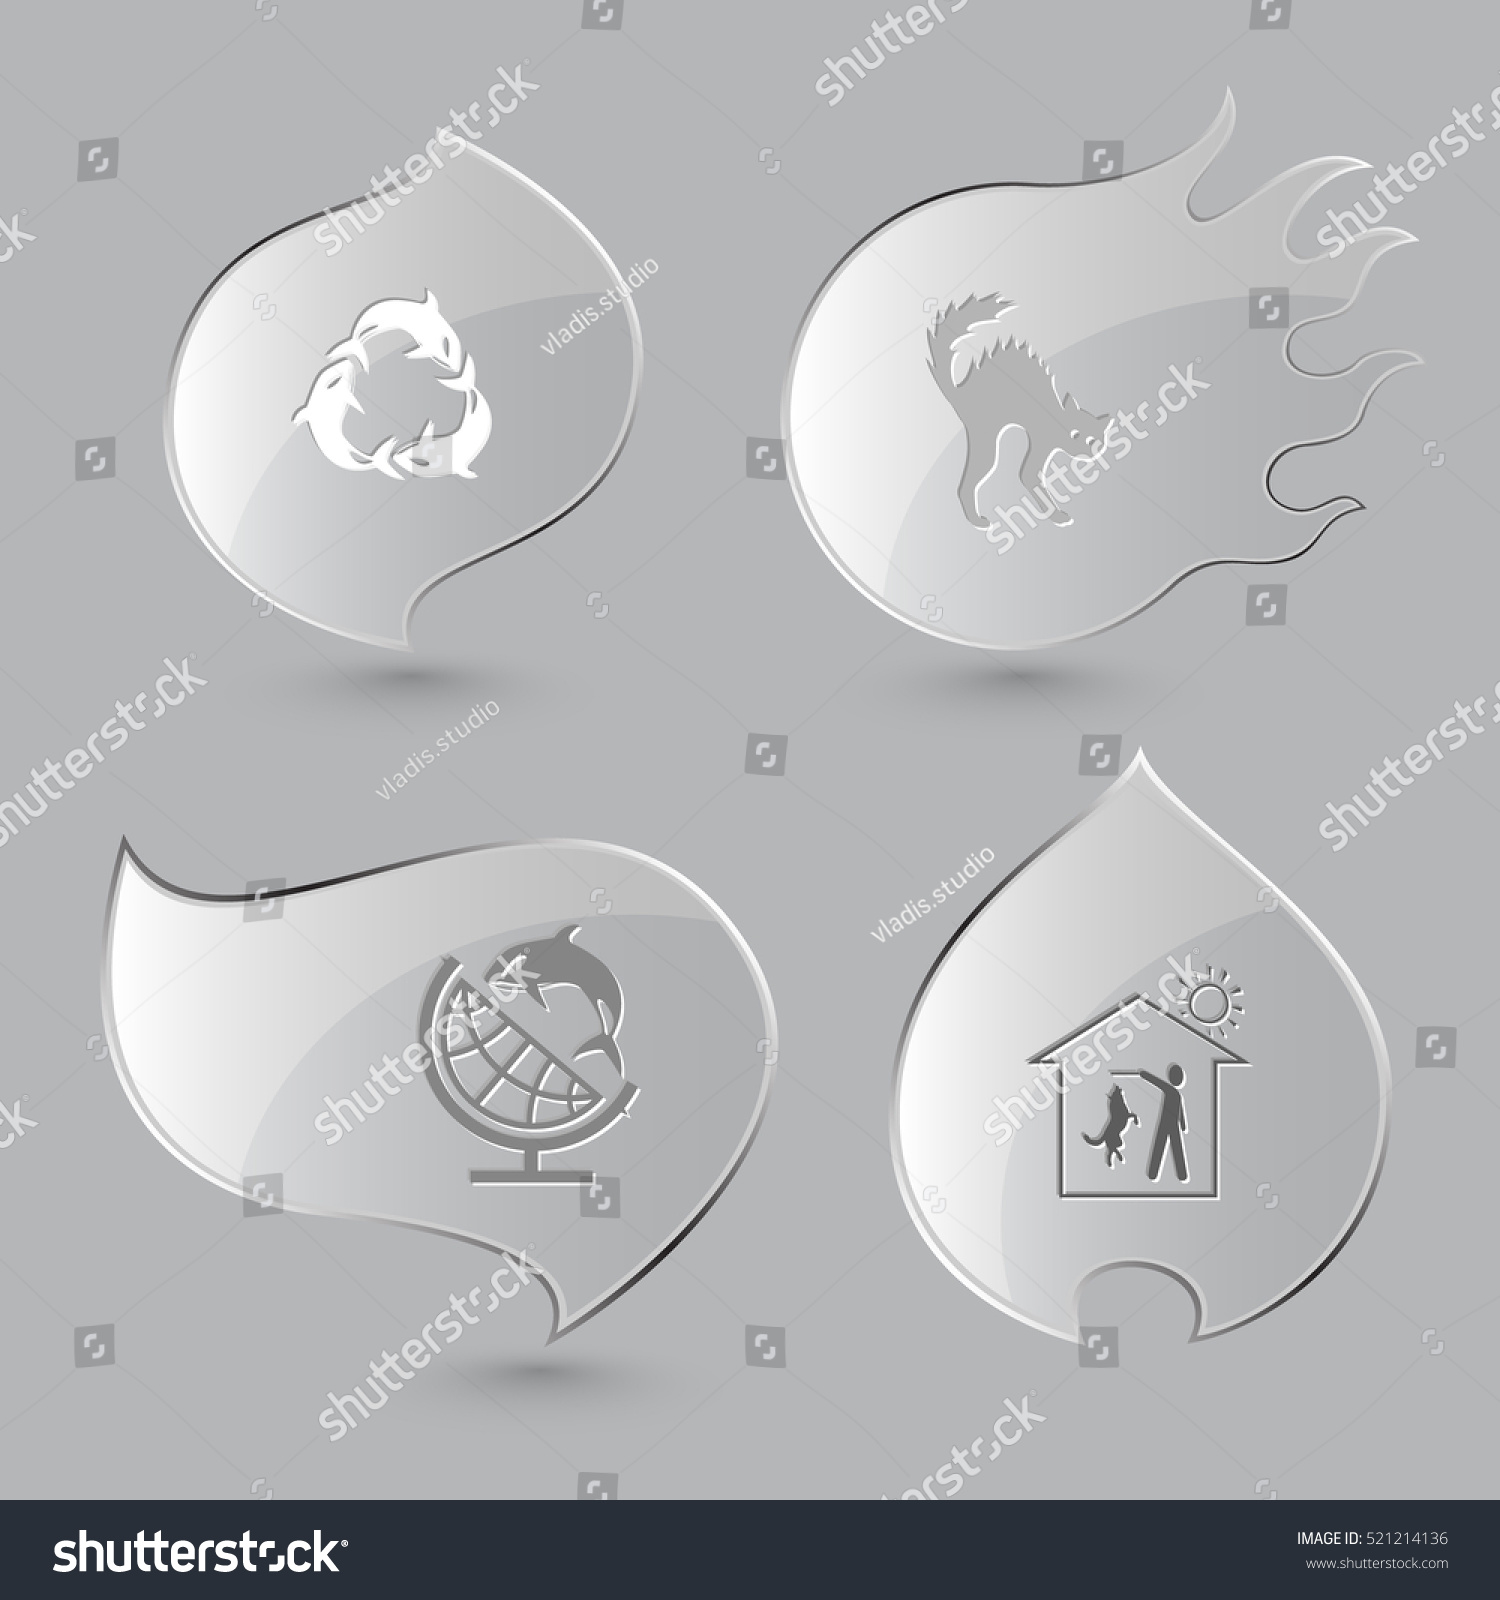 4 images killer whale recycling symbol stock vector 521214136 4 images killer whale as recycling symbol cat globe and shamoo home biocorpaavc Choice Image